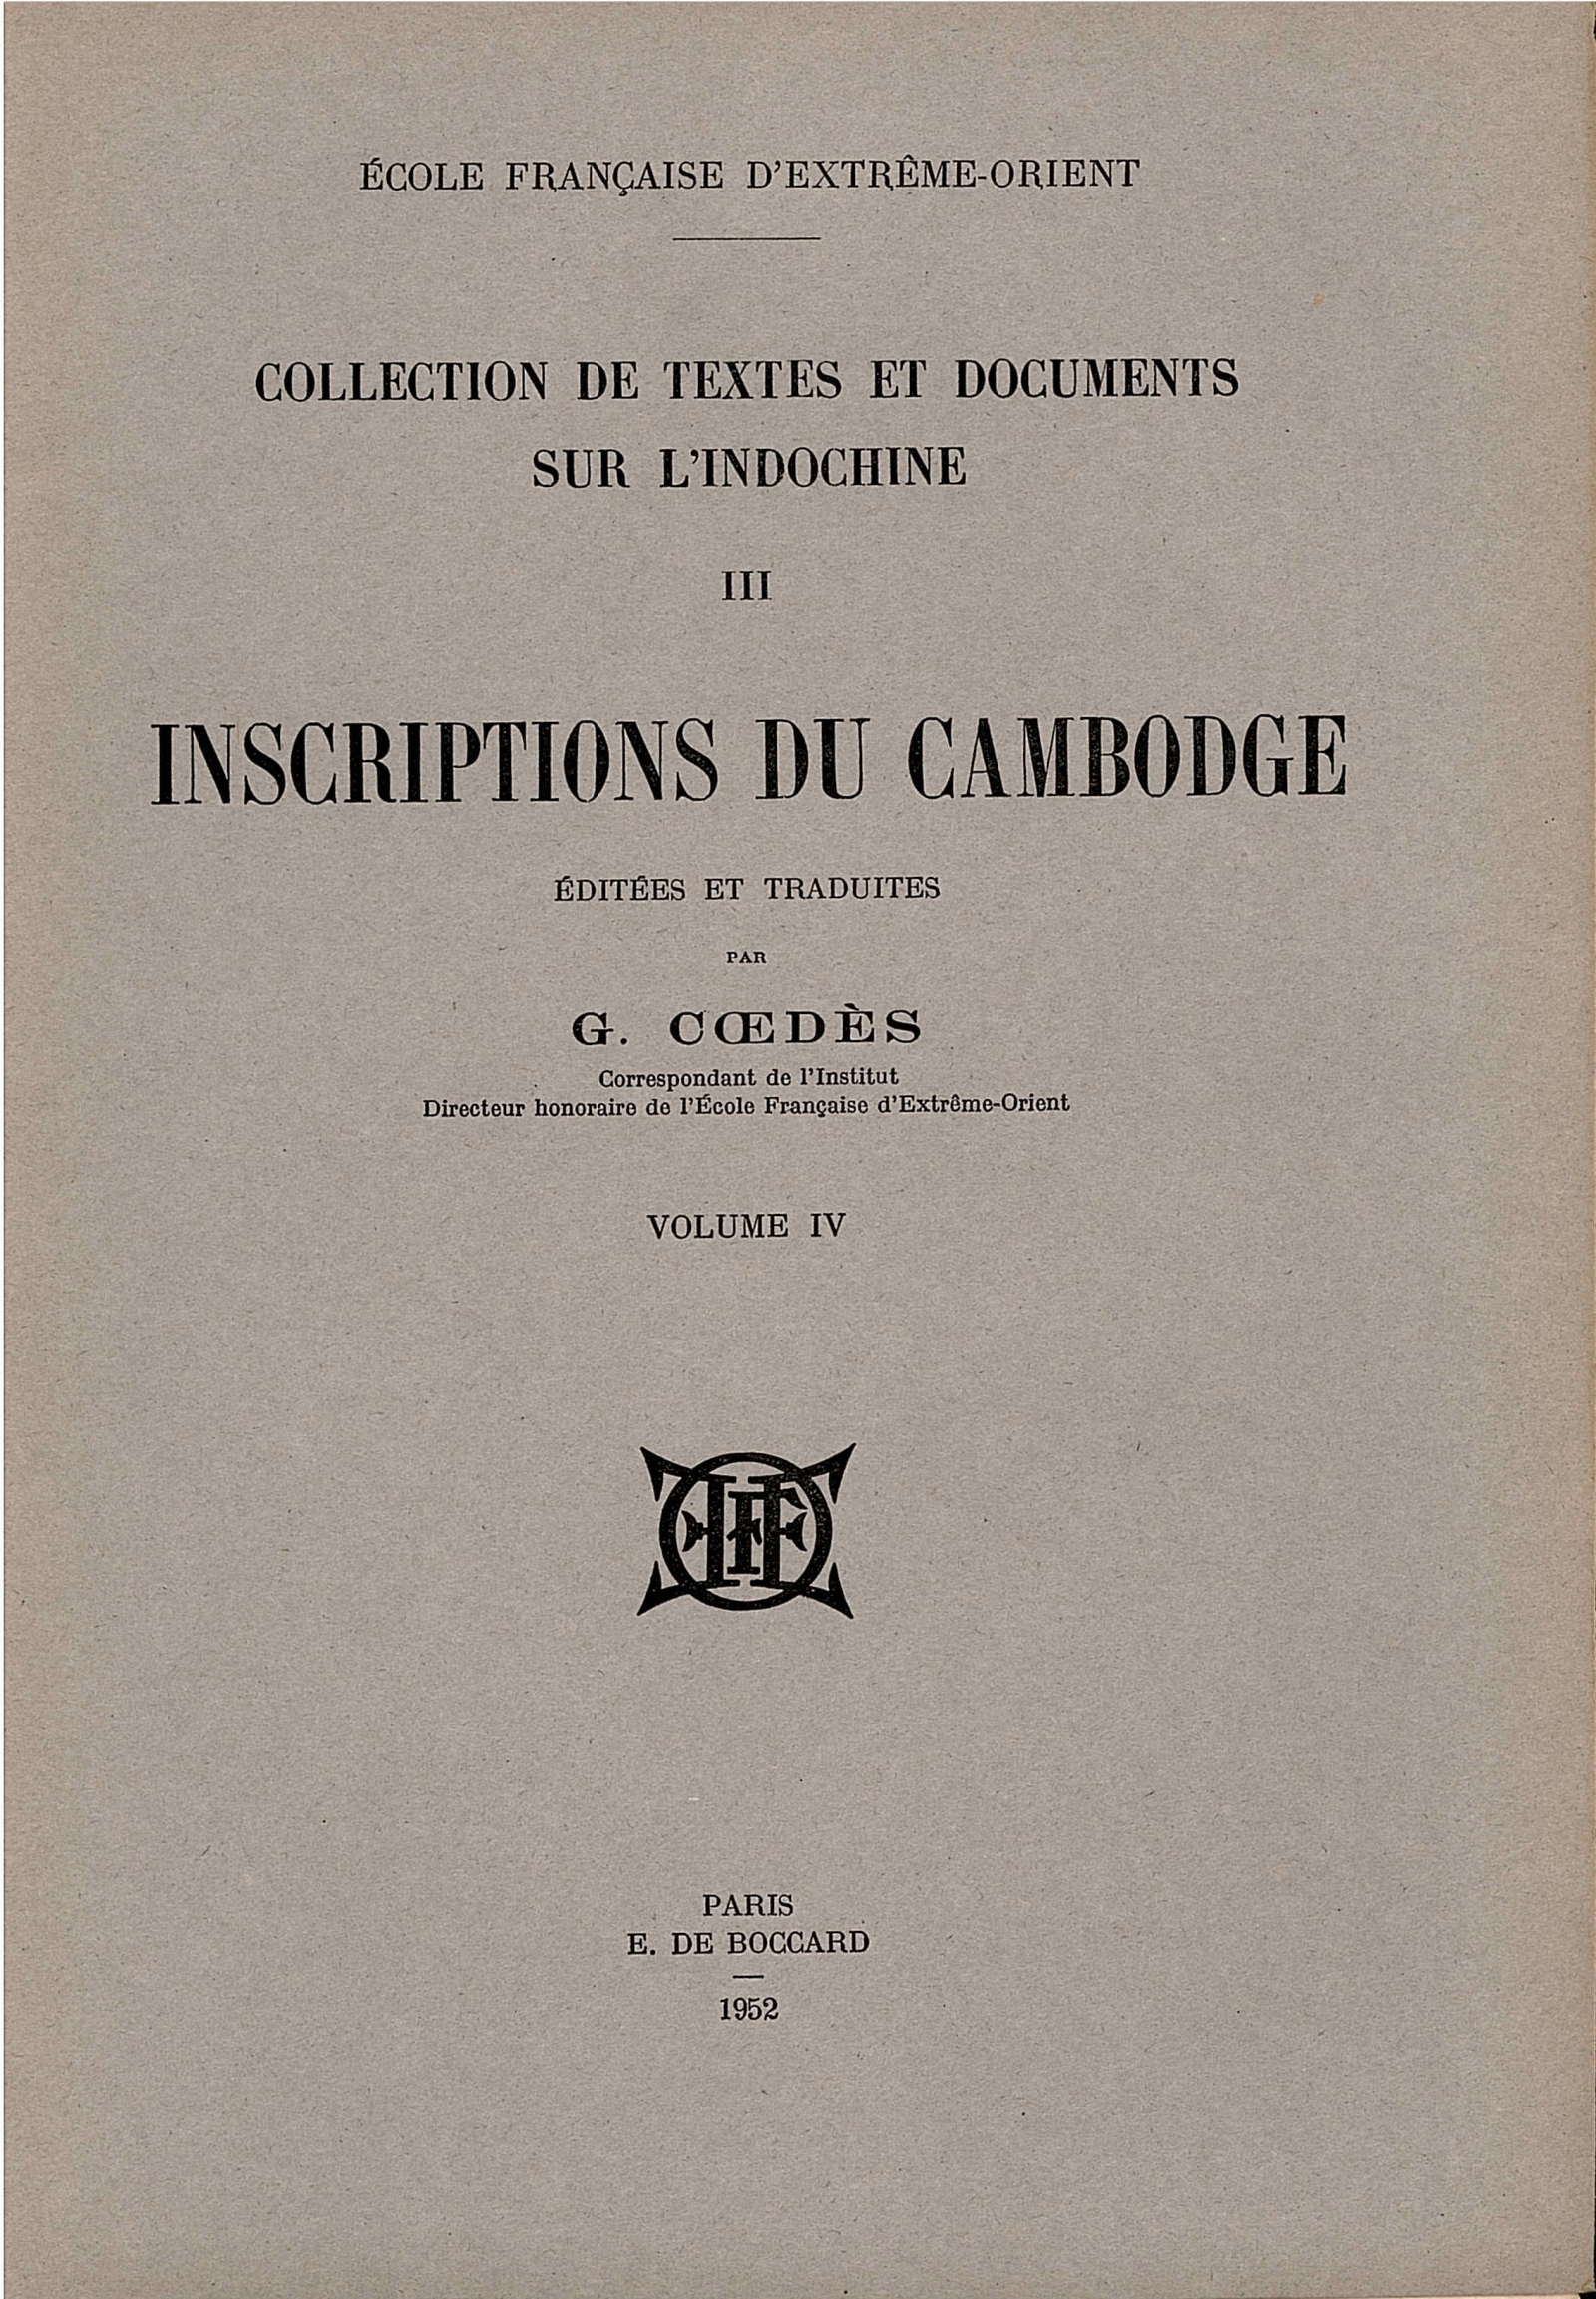 Inscriptions du Cambodge, Volume 4